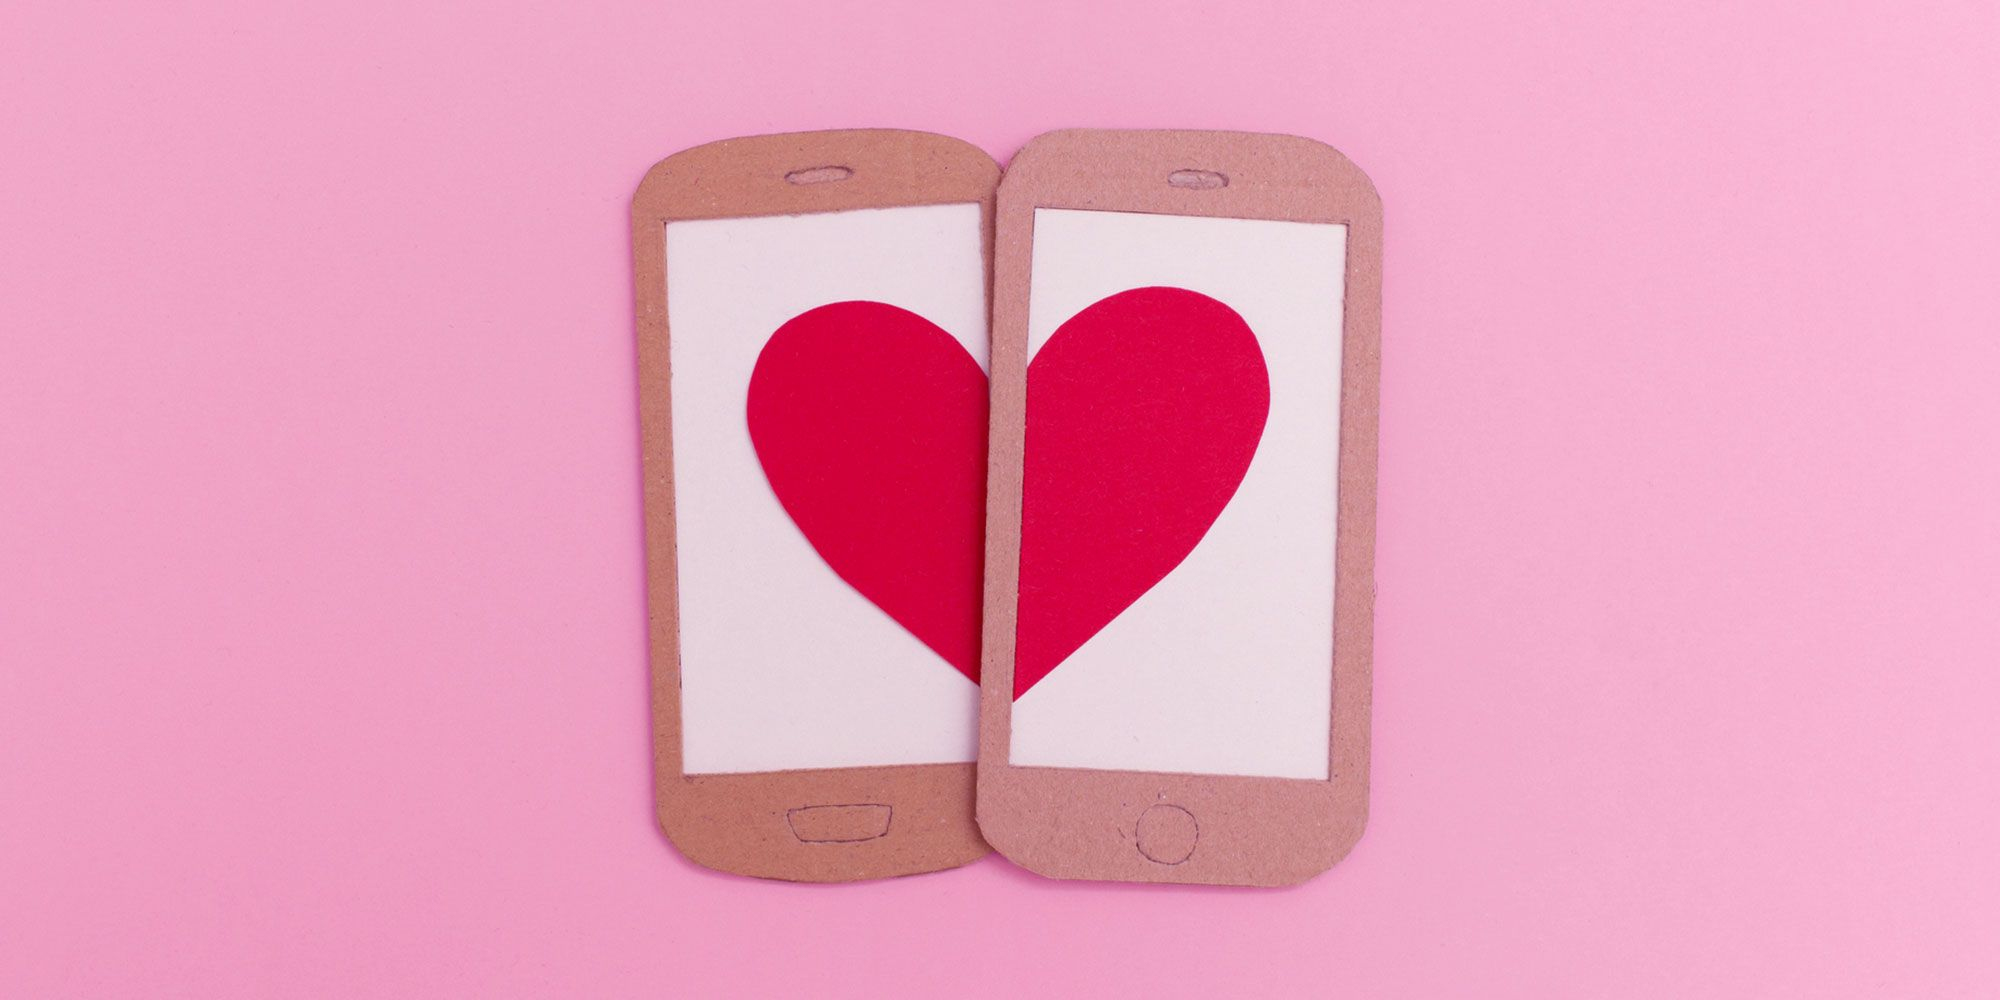 Sex apps | Phone and hearts